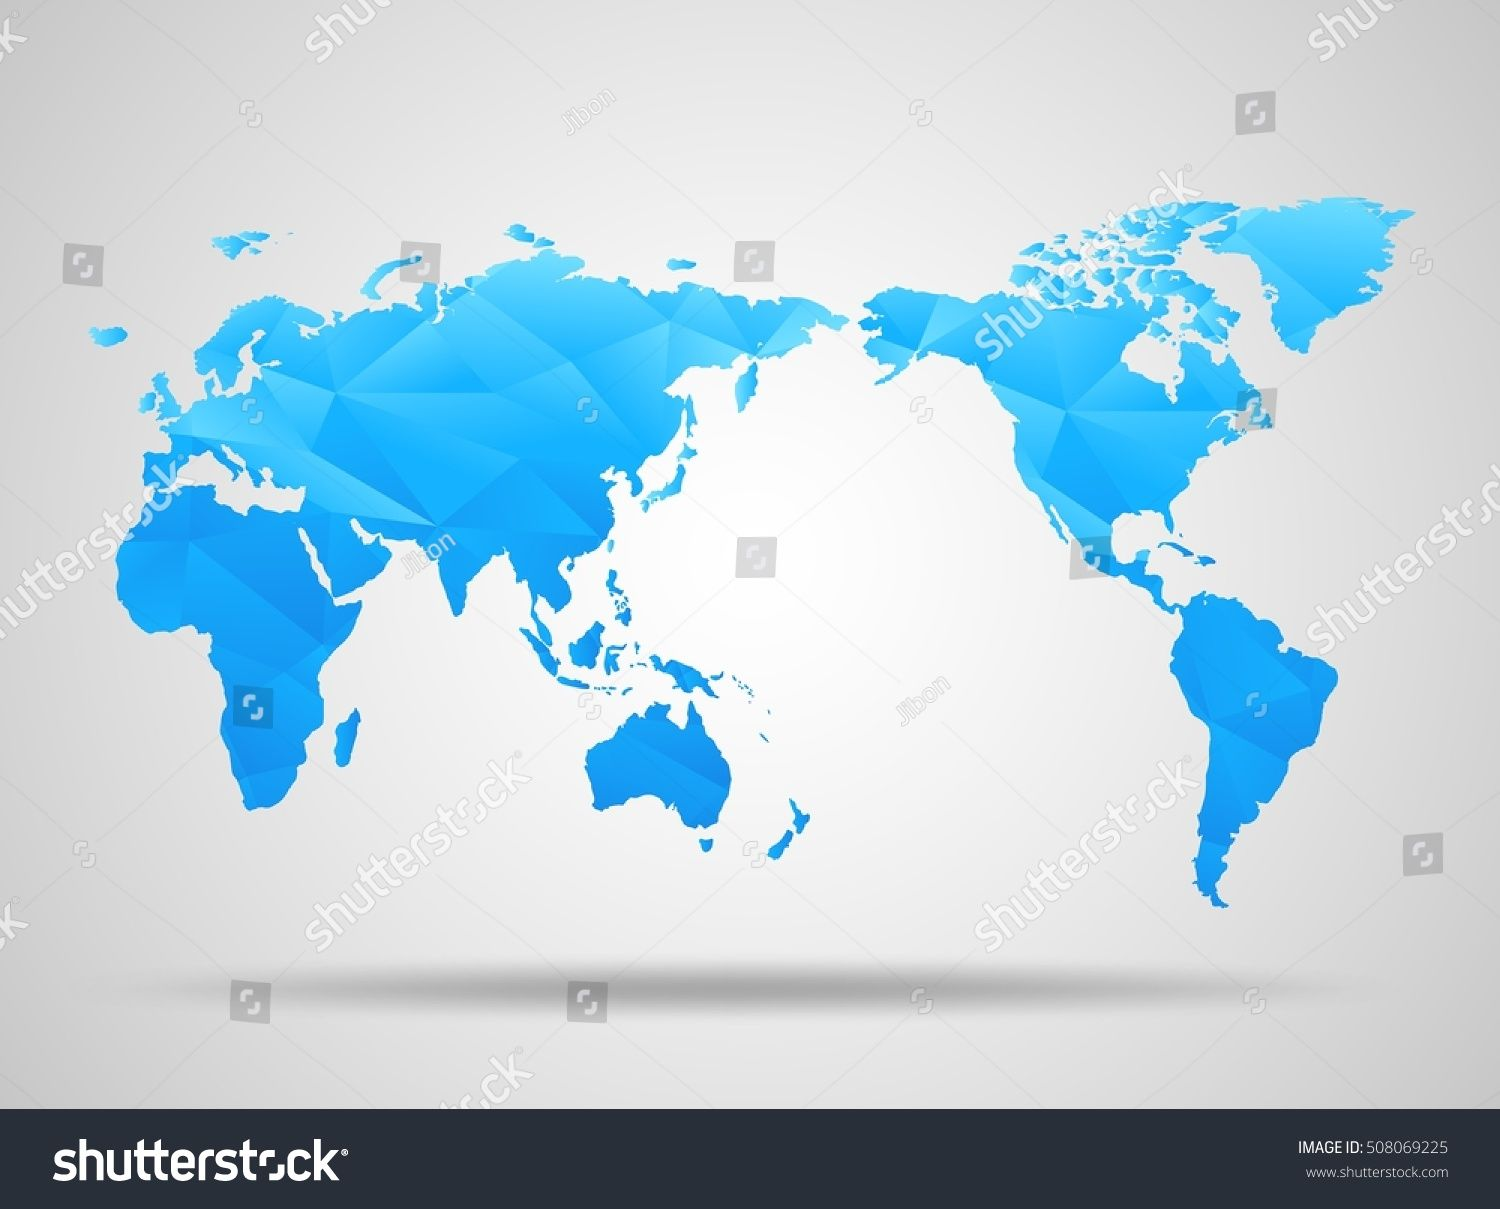 World map low poly design blue origami planet mappemonde carte world map low poly design blue origami planet gumiabroncs Images